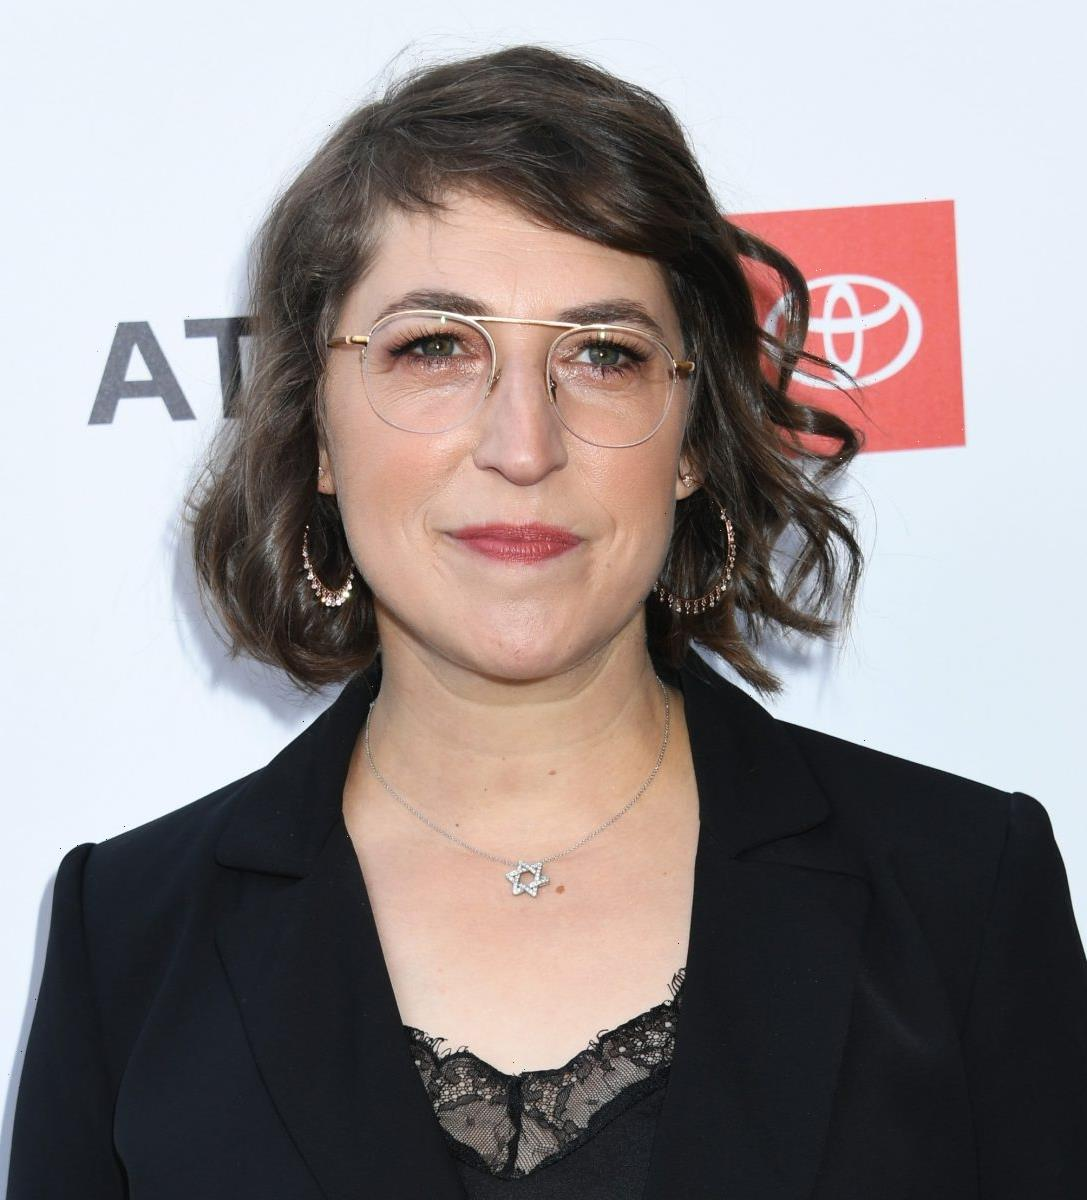 'Jeopardy!' Guest Host Mayim Bialik Comments on the Game Show Drama: 'It's Definitely Been Stressful'